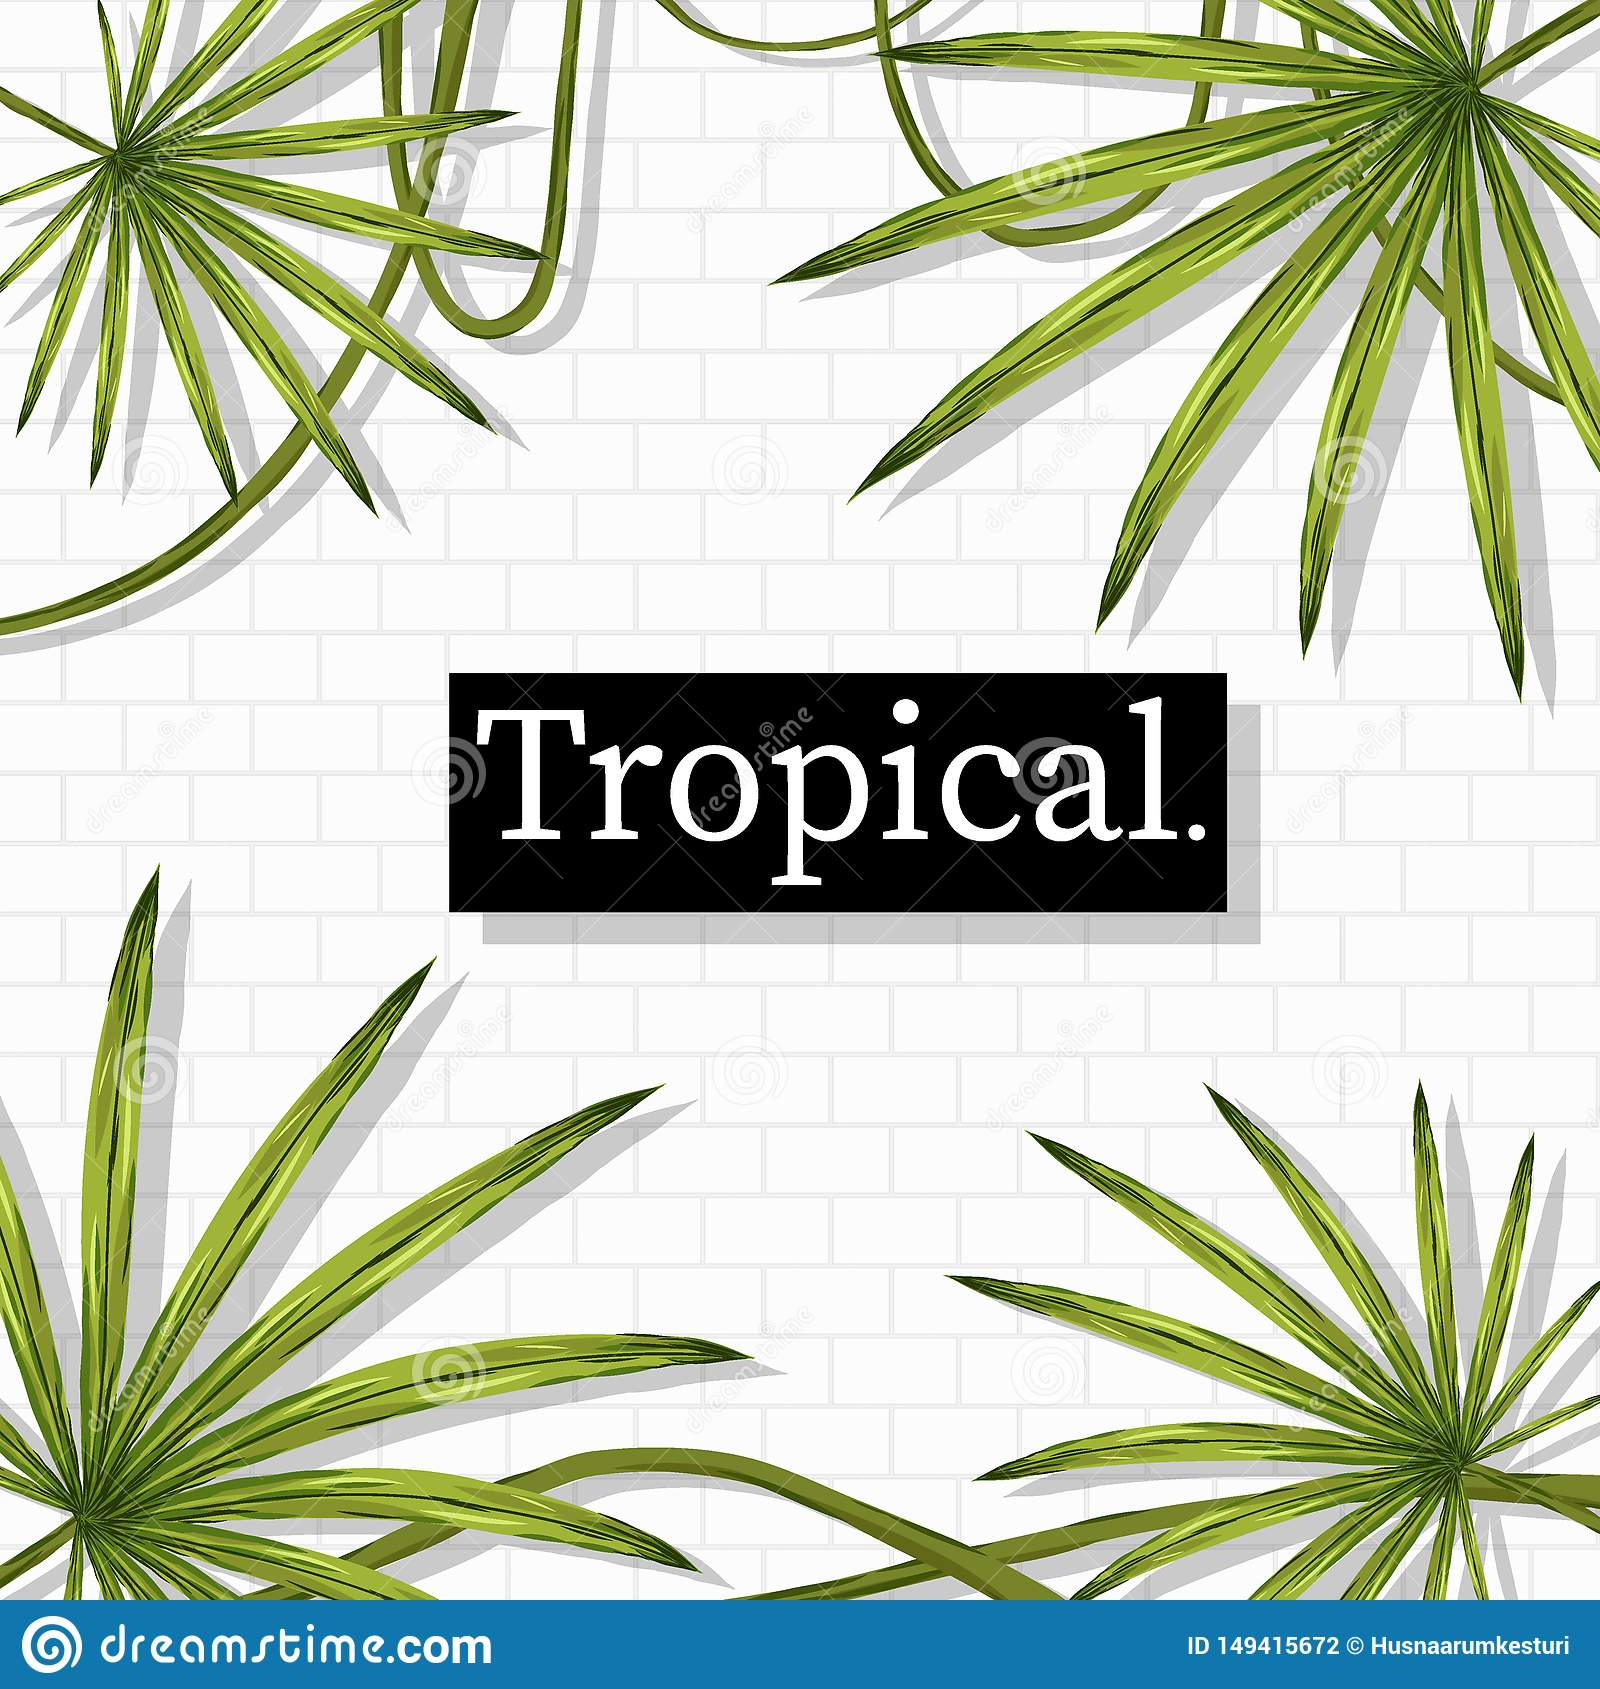 Tropical Summer holiday themed vector background image